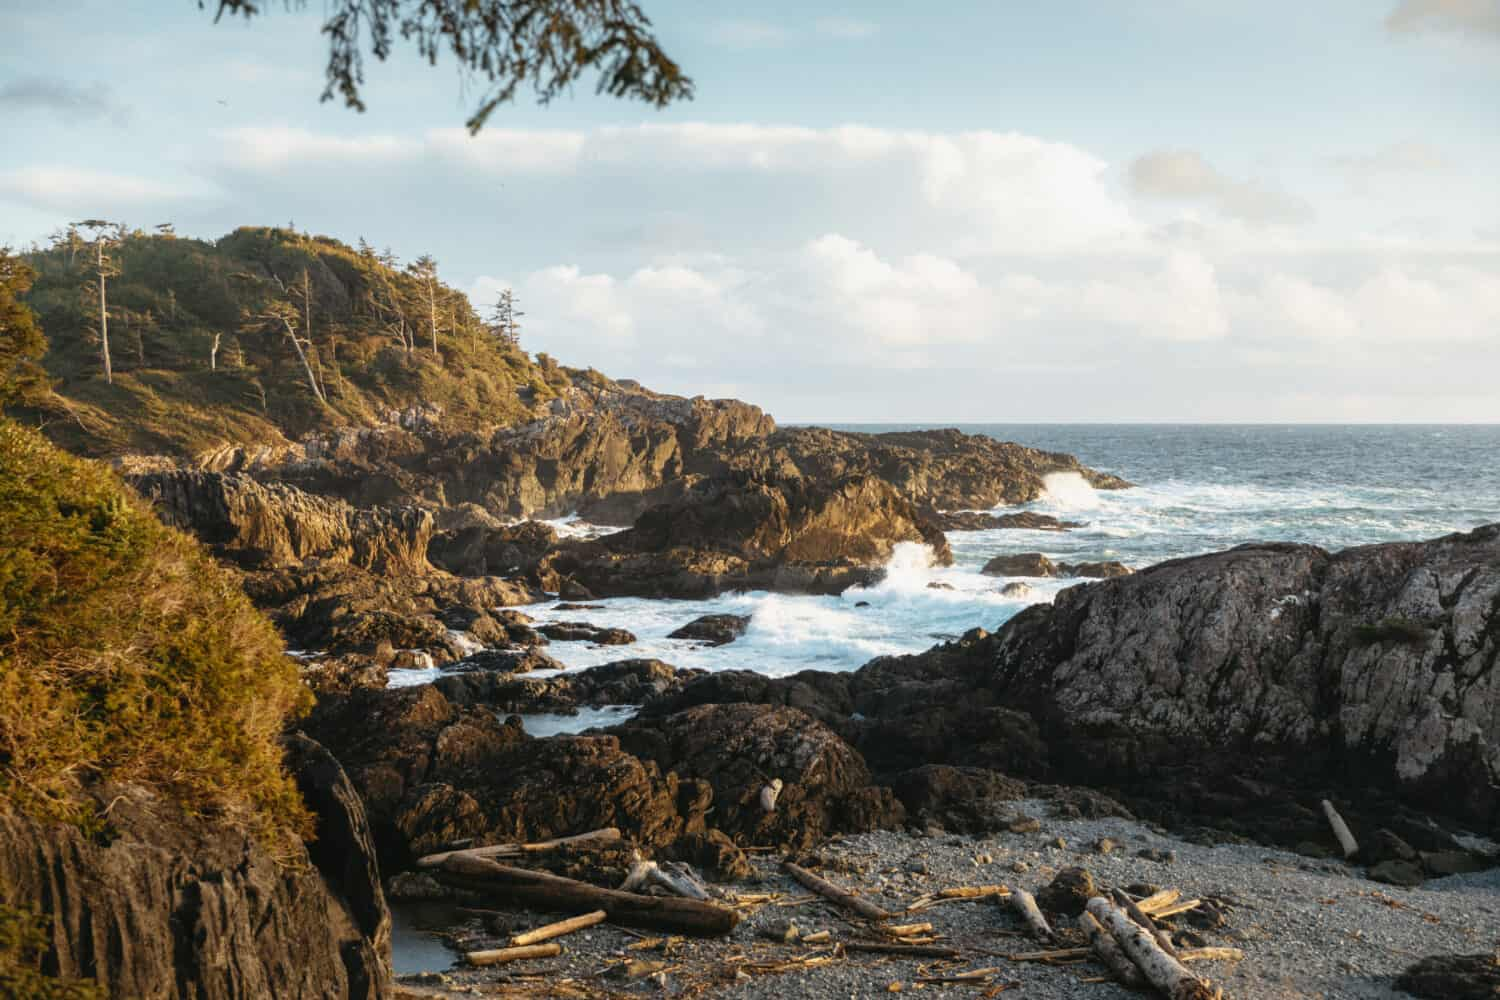 Wild Pacific Trail near Tofino, BC